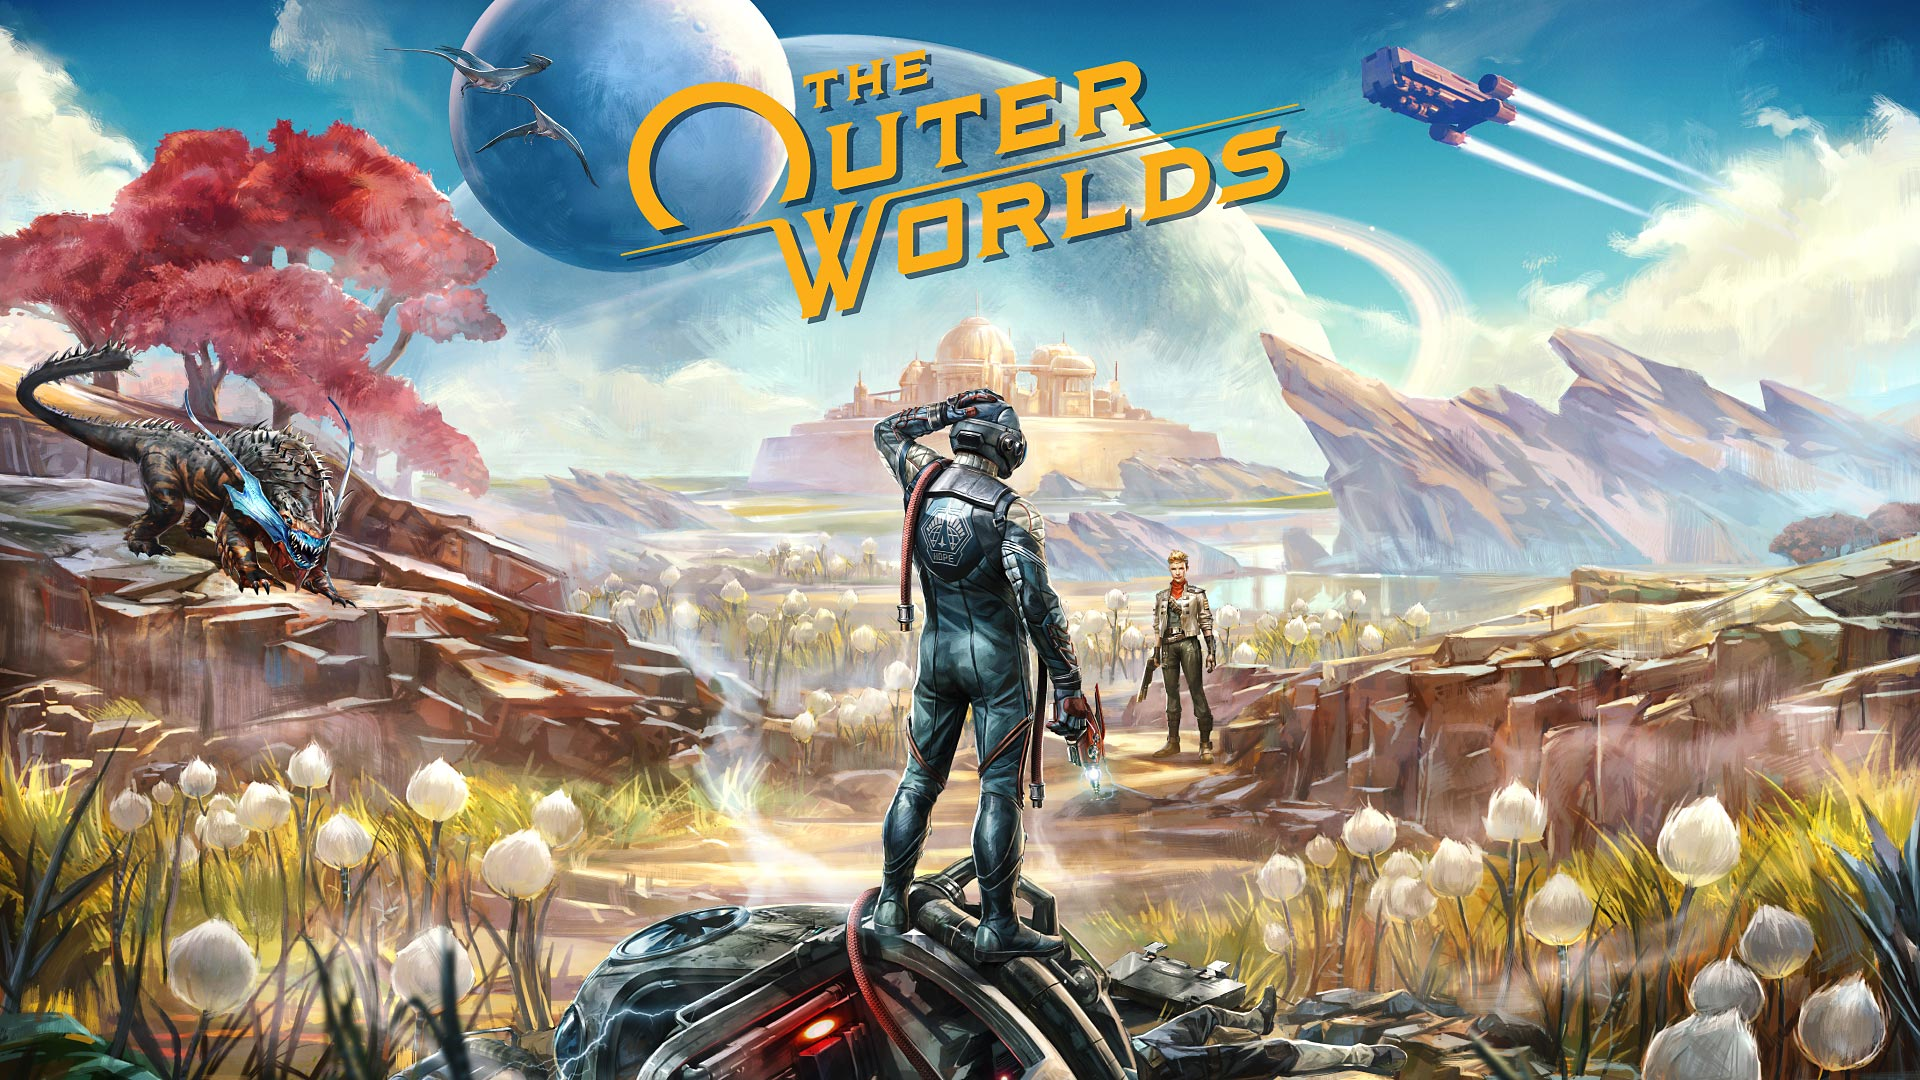 The Outer Worlds Shirts Now Available For Purchase Header Image